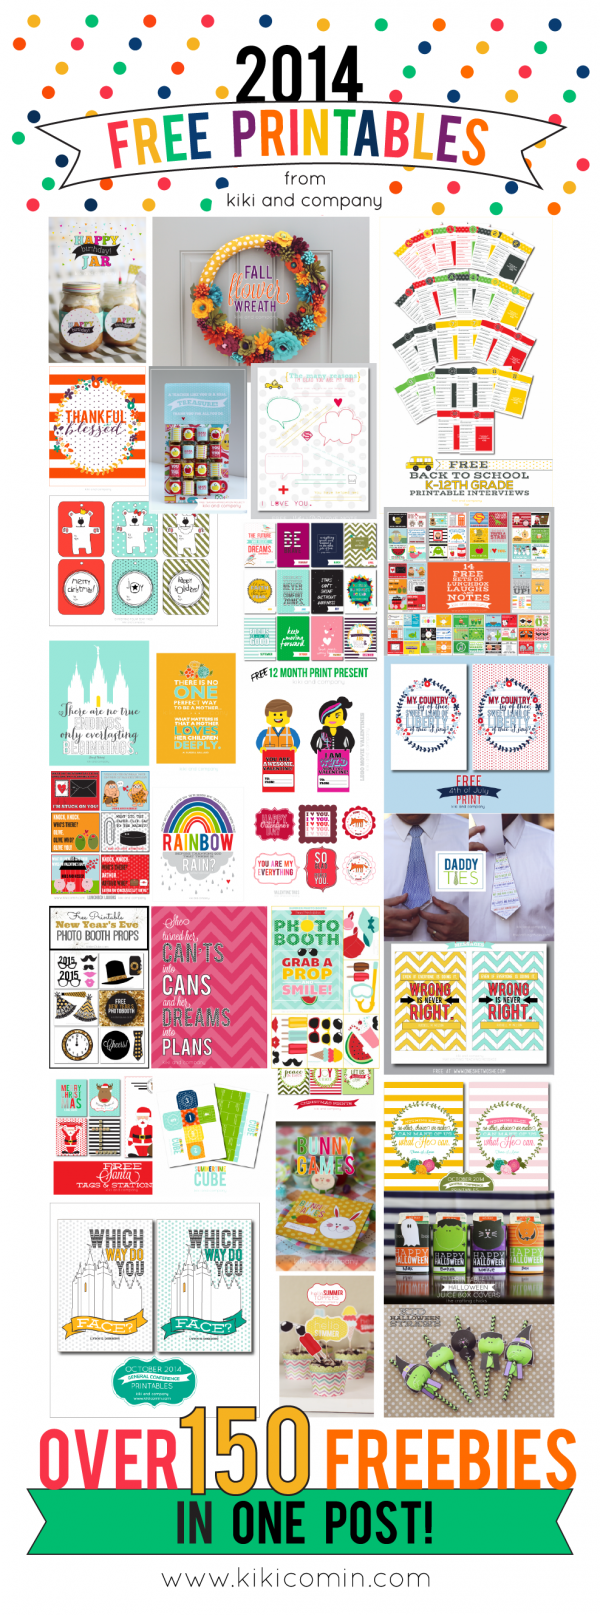 2014 Free Printables from Kiki and Company. Over 150 free printables in one post!